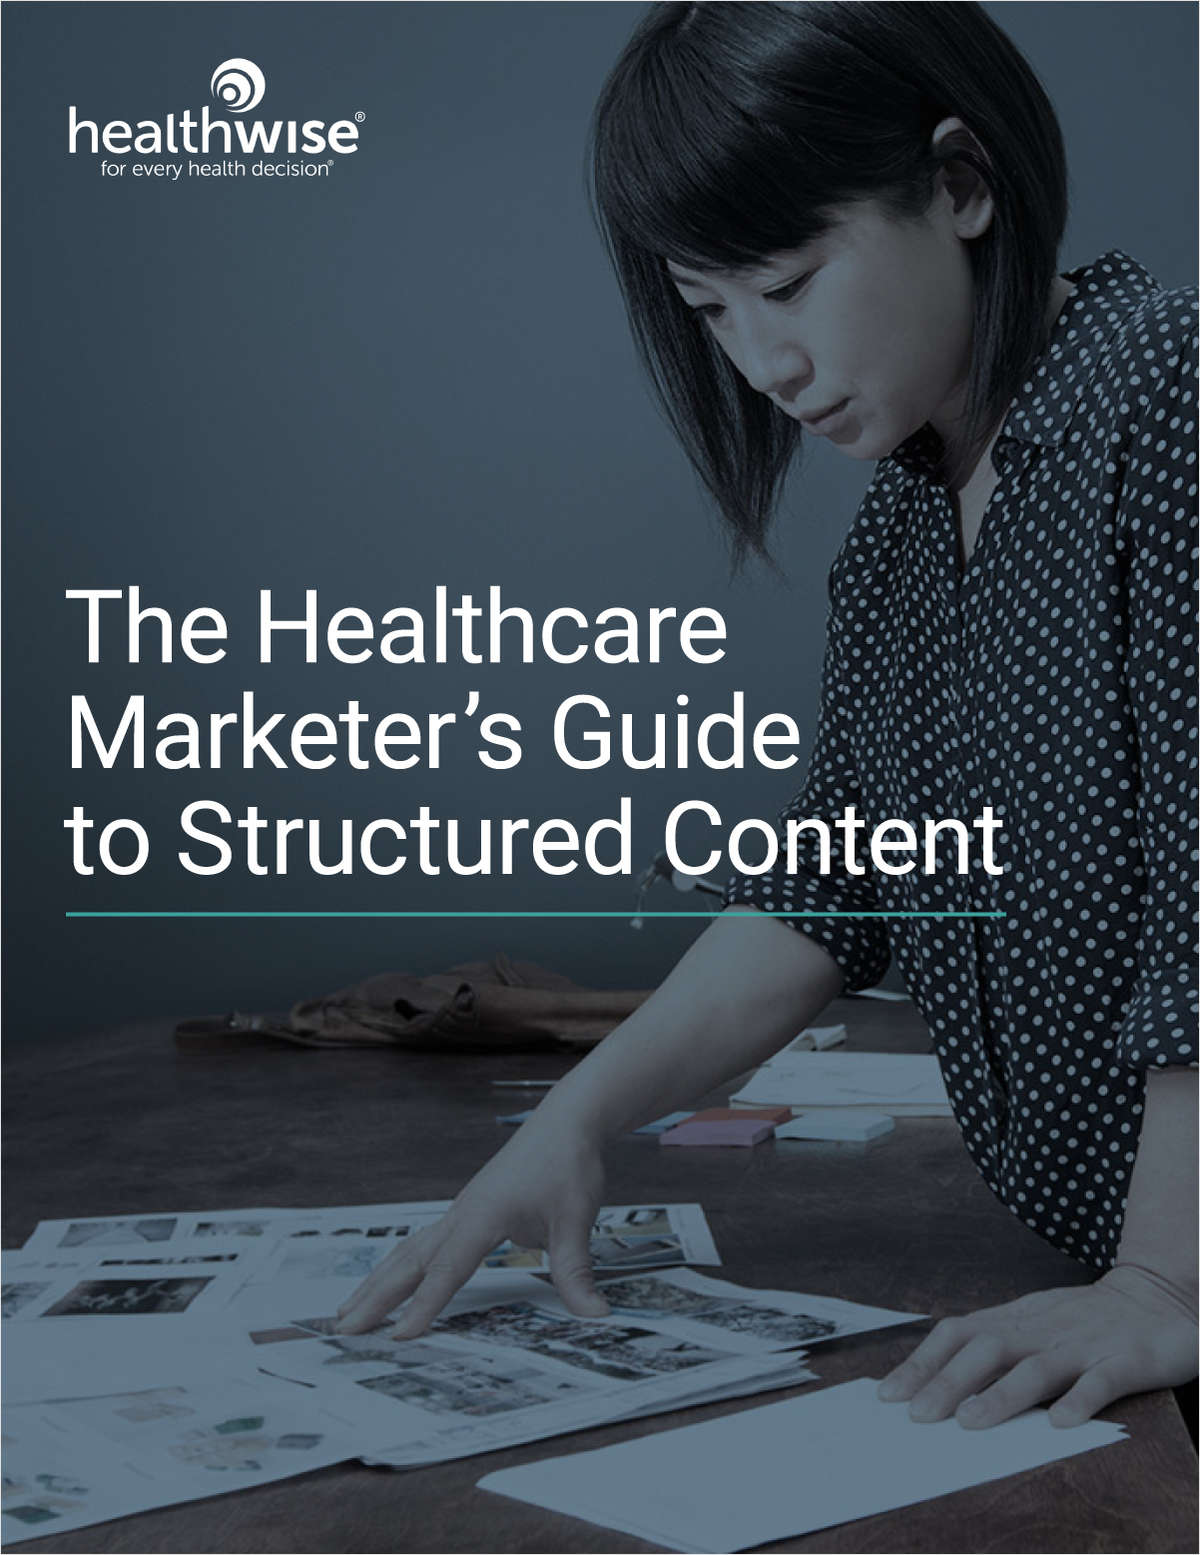 The Healthcare Marketer's Guide to Structured Content